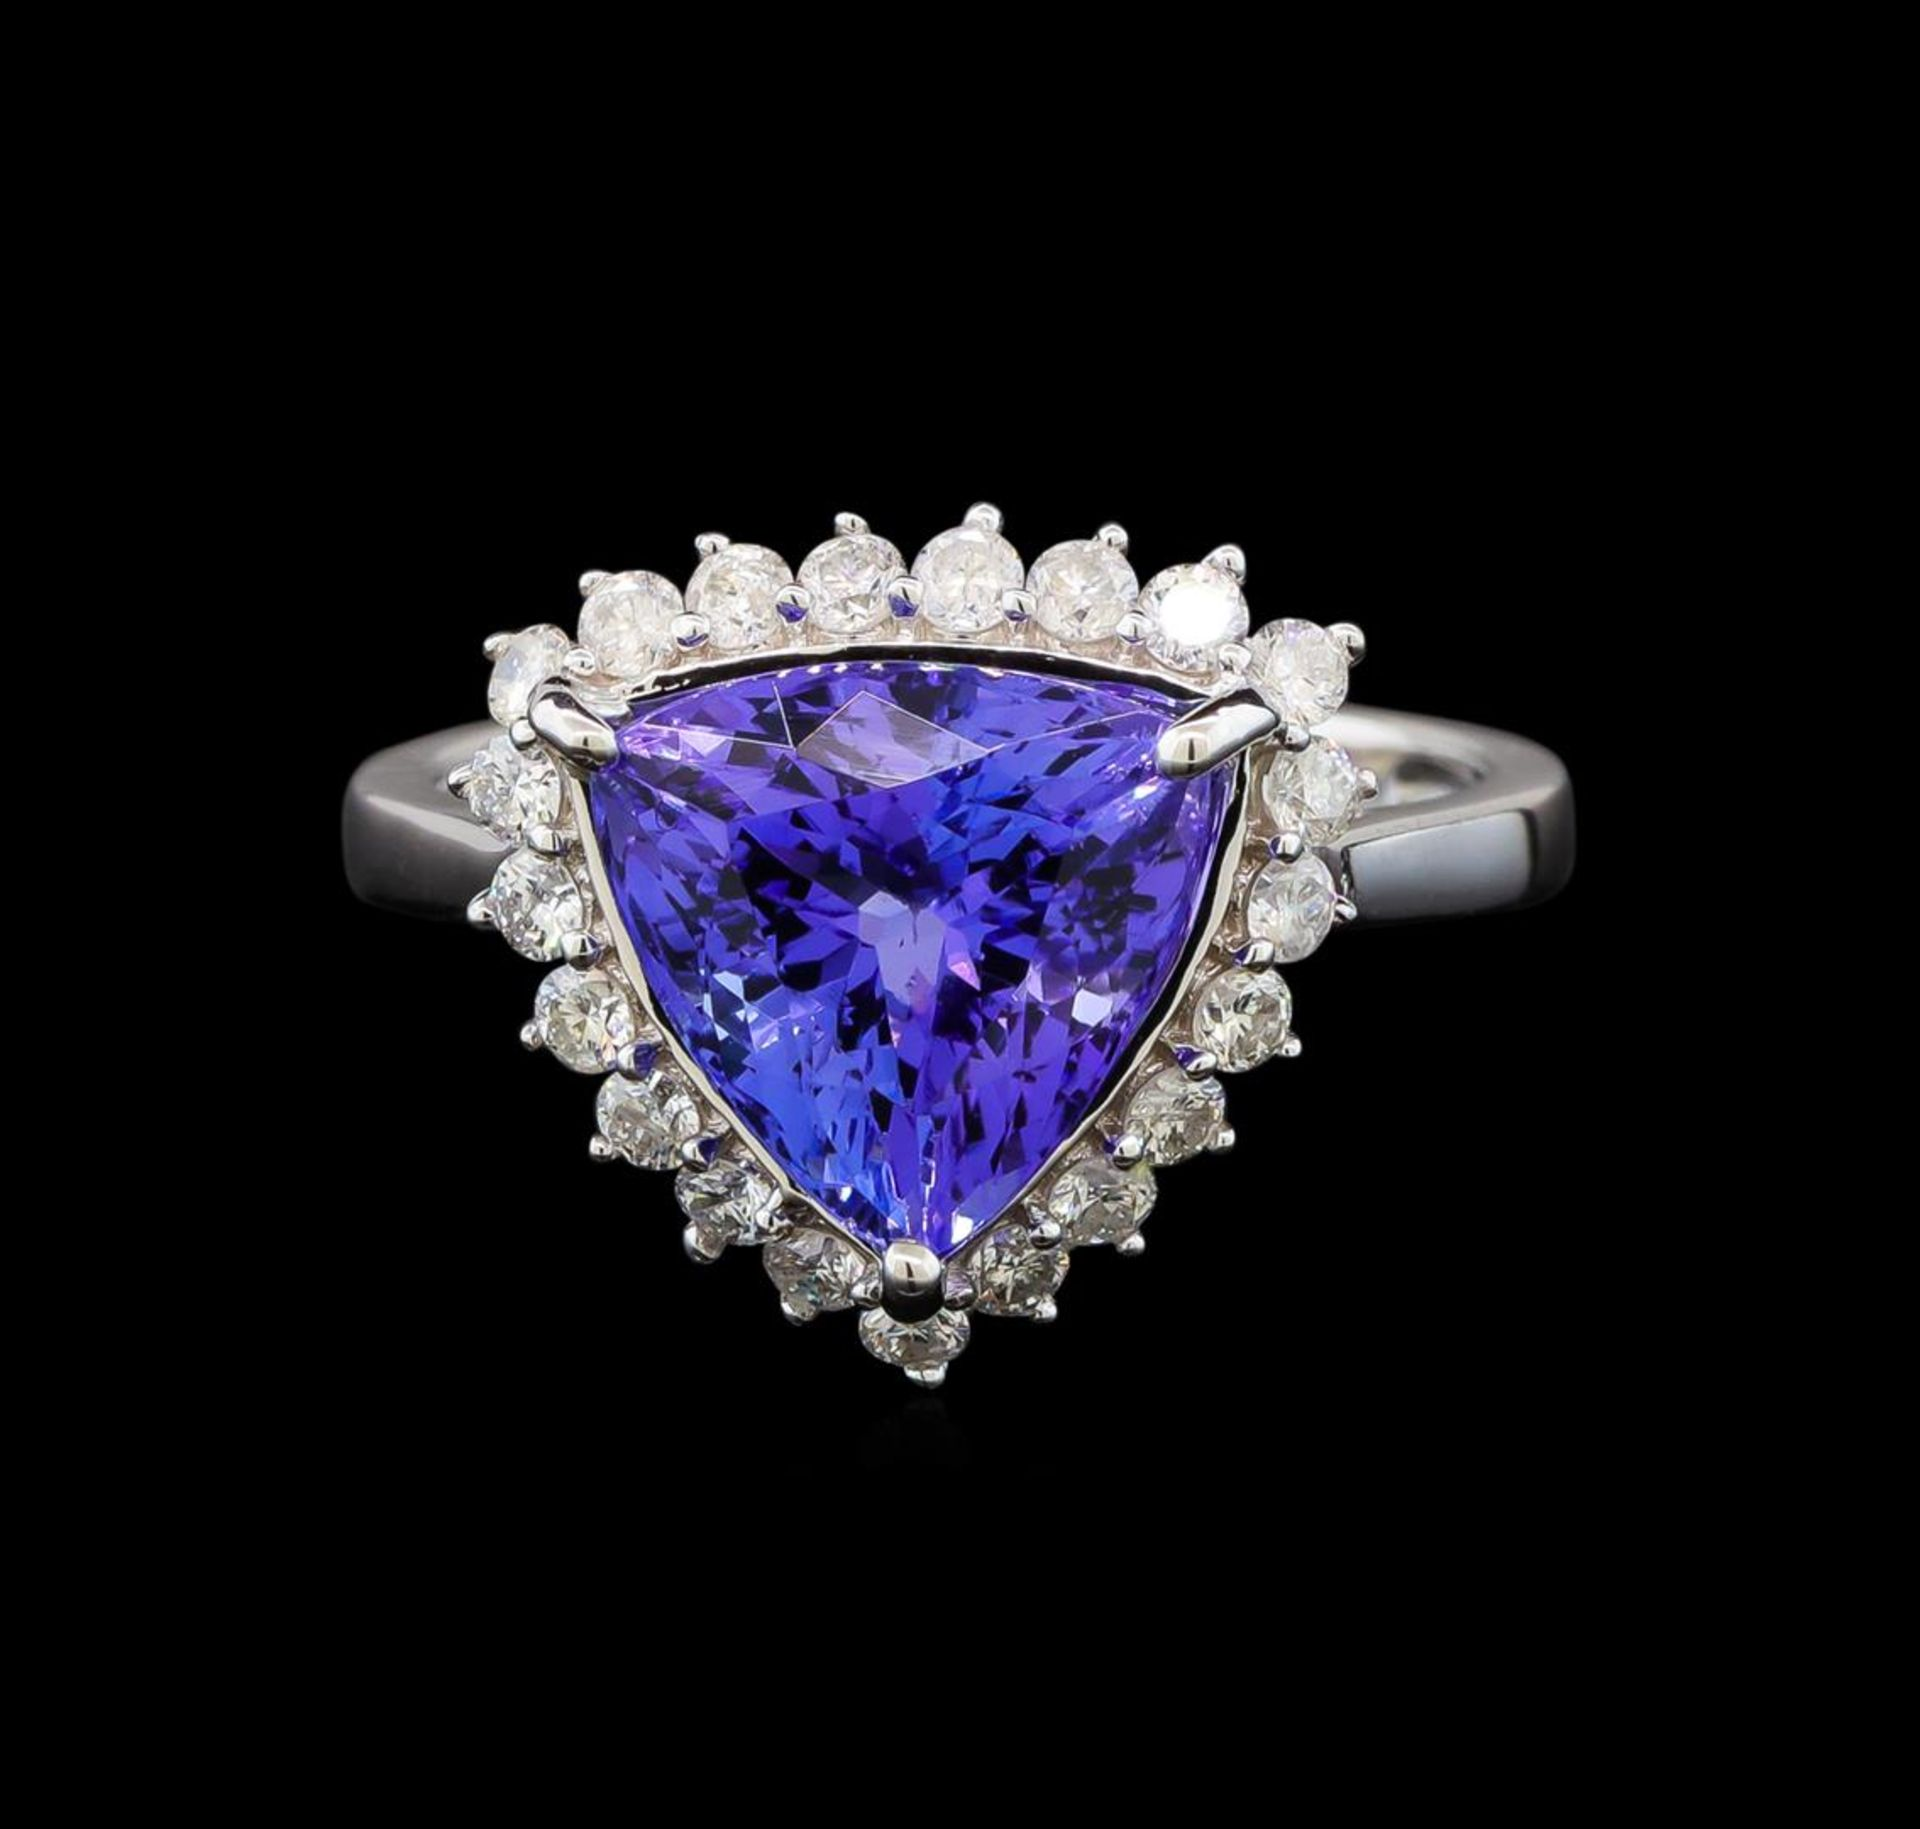 14KT White Gold 2.78 ctw Tanzanite and Diamond Ring - Image 2 of 5